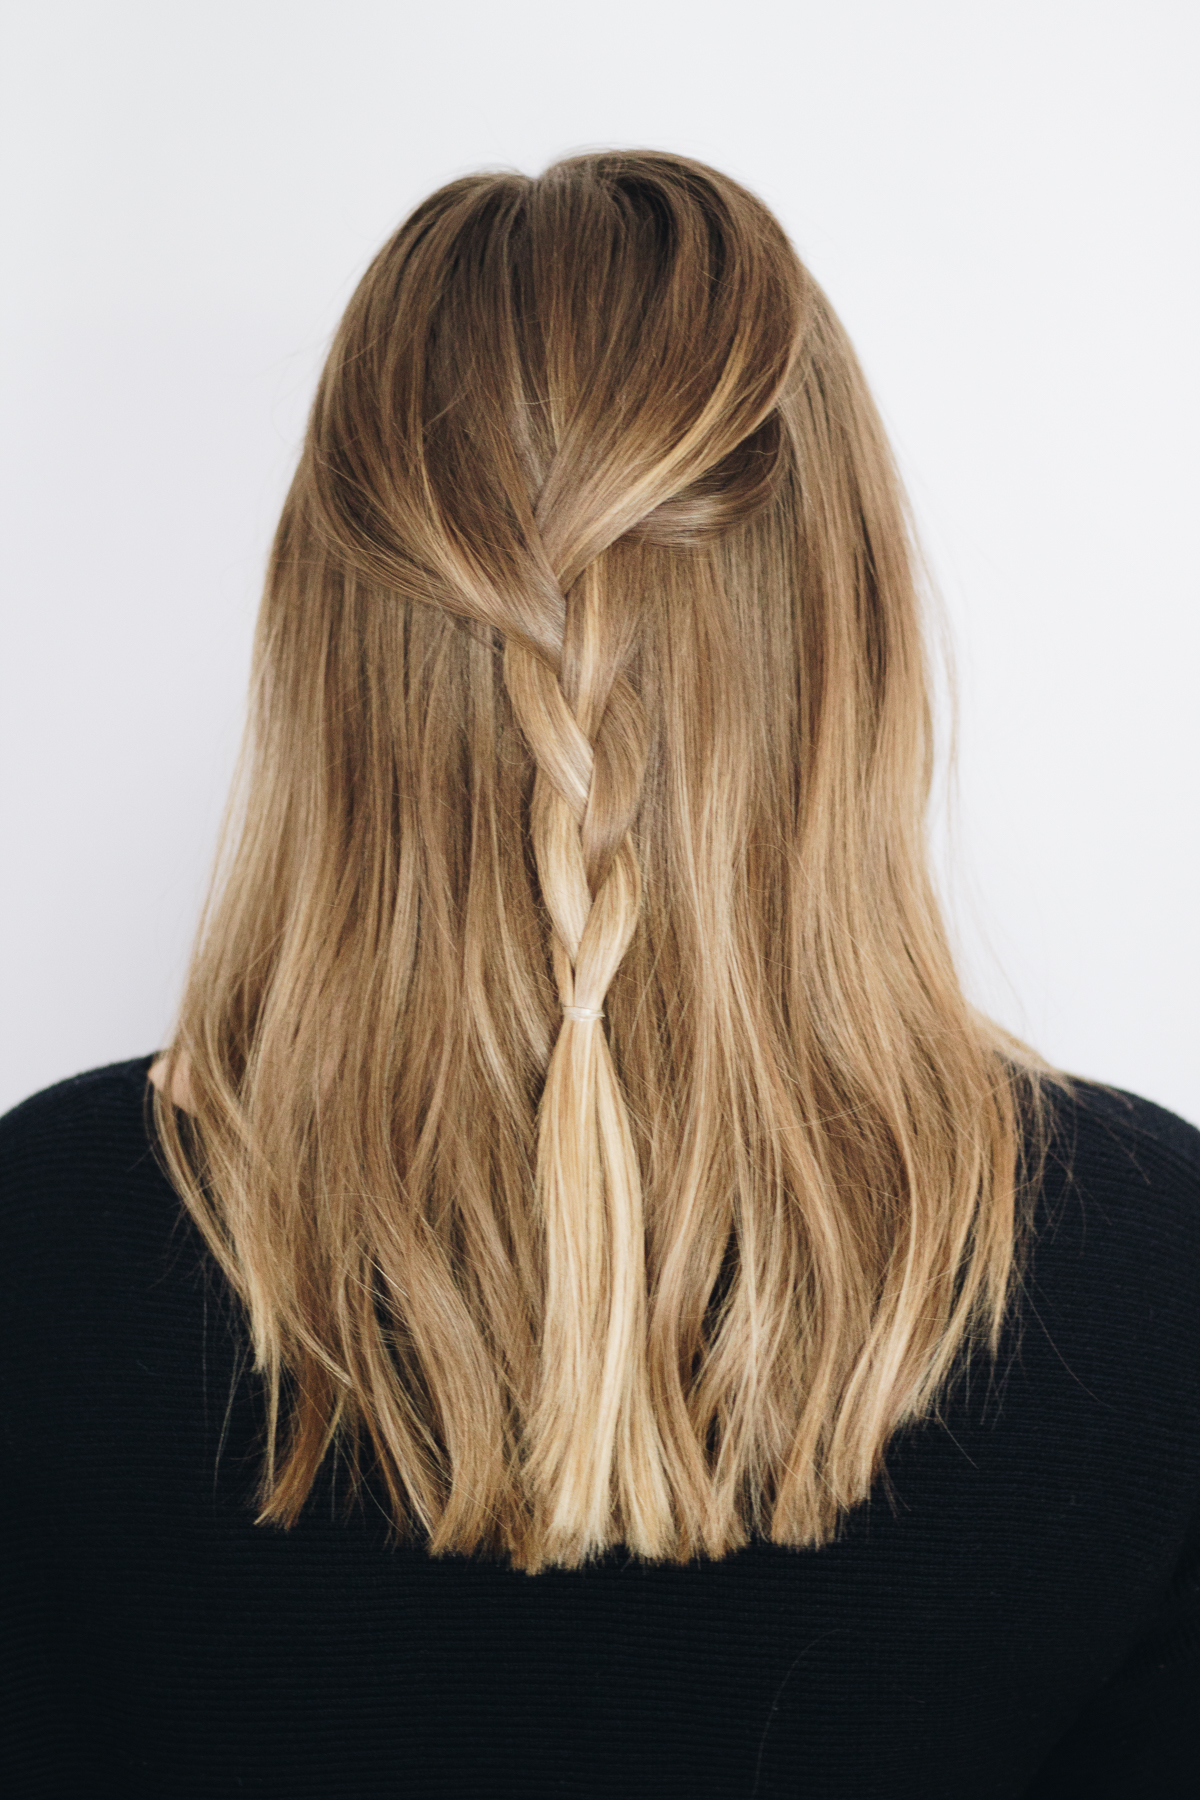 5-Minute Hairstyles for the Girl On-the-Go